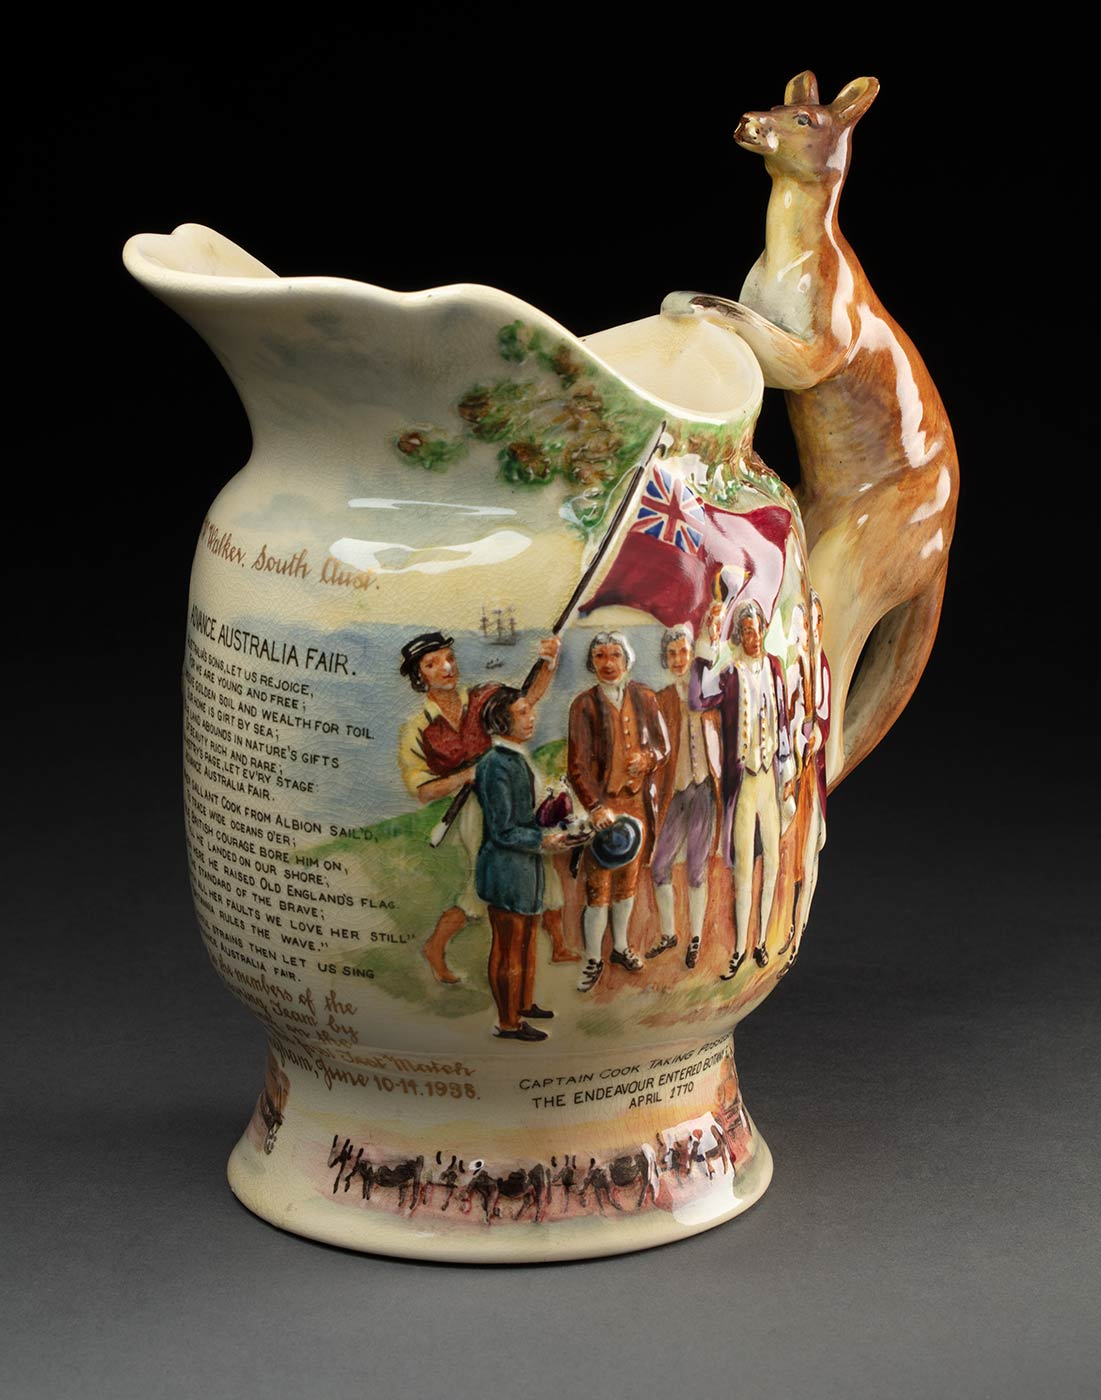 Fielding's Crown Devon earthenware 'Advance Australia Fair' musical jug which features relief moulding with a handle in the shape of a kangaroo. The jug has a painted scene of ships and a boat entering Botany Bay with Aboriginal men brandishing spears in their direction. Text below this reads, 'THE BLACKS THREW SPEARS AT COOK'S MEN.' There is also an image of Captain Cook raising his hat. He is surrounded by his men, one of whom is holding a red ensign. Text below this reads, CAPTAIN COOK TAKING POSSESSION. THE ENDEAVOUR ENTERED BOTANY BAY IN APRIL 1770'. The jug features the first and second verse of the poem 'Advance Australia Fair'. Text inscribed at the base in gilded lettering reads, 'Presented to the members of the Australian Touring Team by A. Ross. Fielding, on the occasion of the first test match at Nottingham, June 10.14.1938, C. W. Walker, South Aust.' Beside this is an untitled depiction of a drover's dray pulled along by a bullock team. The base is filled in with a wooden plate which has a winding mechanism set into it. The edge of the base has black text that reads 'CROWN DEVON / FIELDINGS / MADE IN ENGLAND'. - click to view larger image